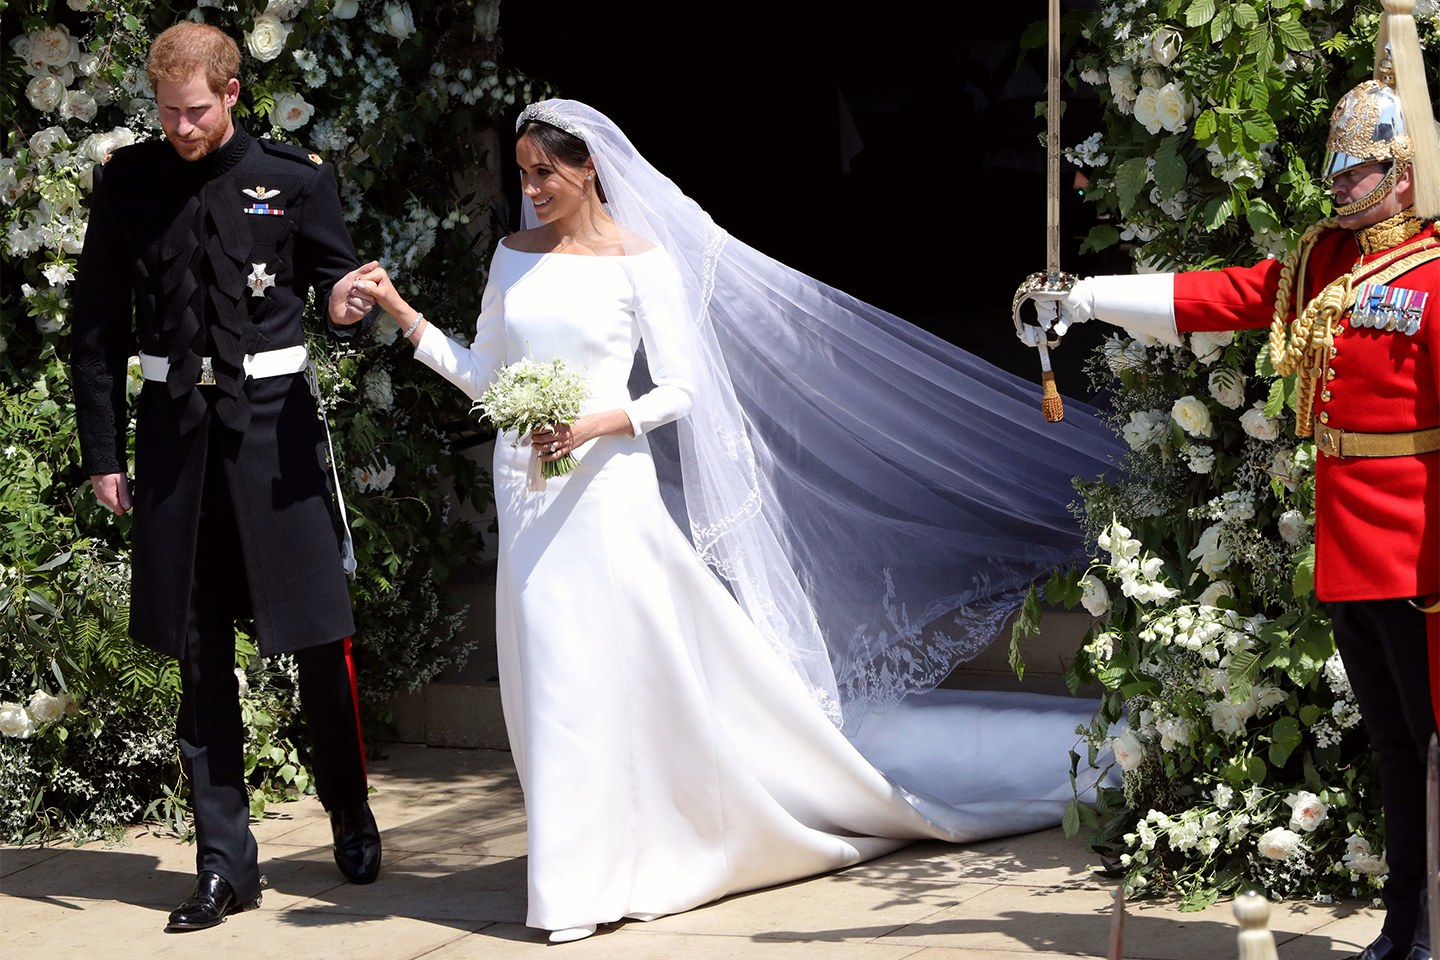 Prince-Harry-Meghan-Markle-Wedding-Dress.jpg